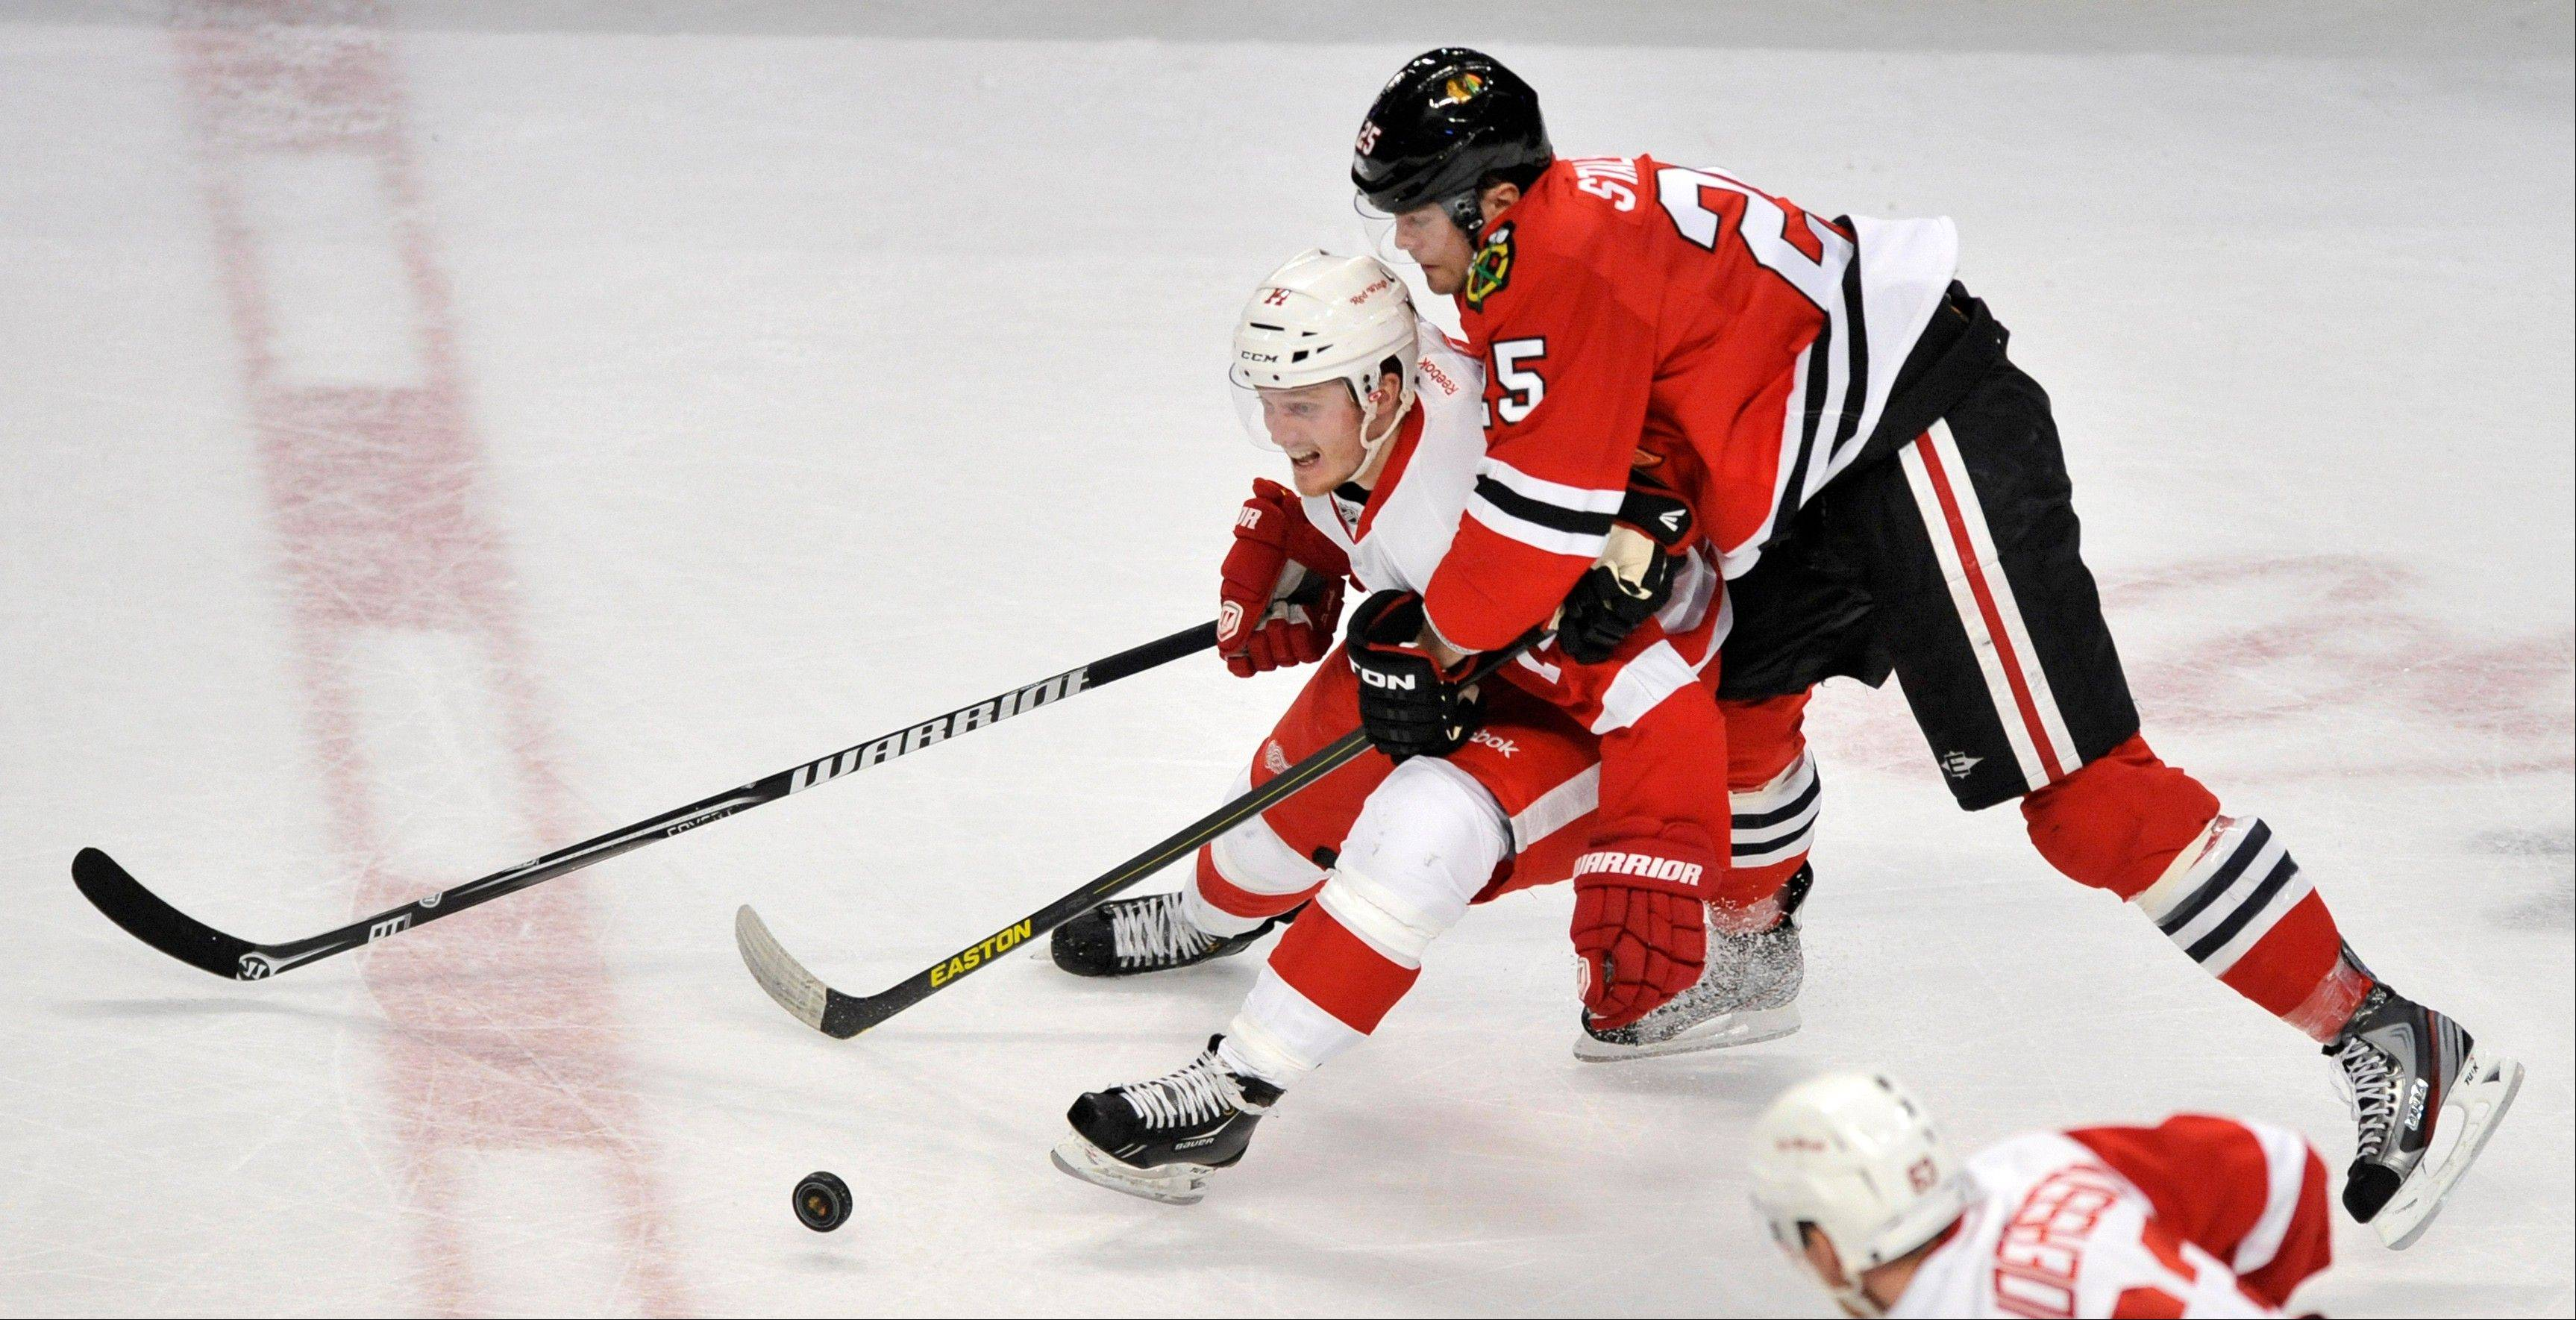 Viktor Stalberg (25), of Sweden, battles for the puck against Detroit Red Wings� Gustav Nyquist left, of Sweden during the second period of a NHL hockey game in Chicago, Friday, April 12, 2013. Chicago won 3-2 after a shootout.